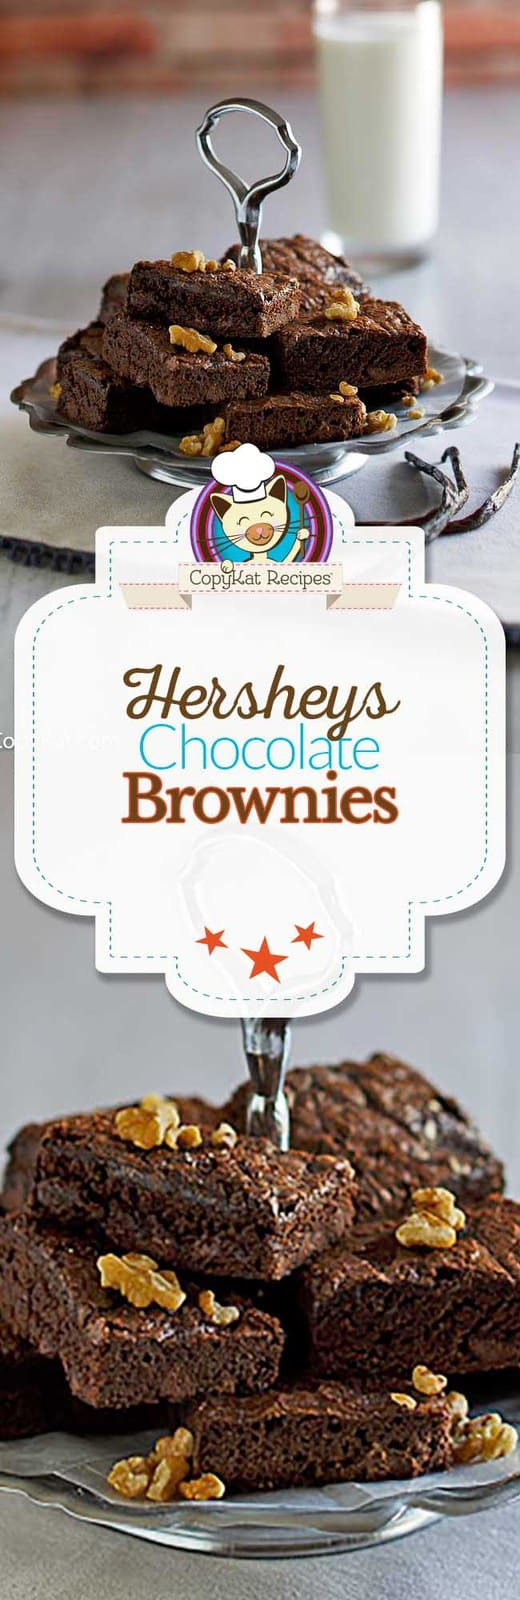 How to make delicious Hersheys brownies from scratch with this easy recipe.